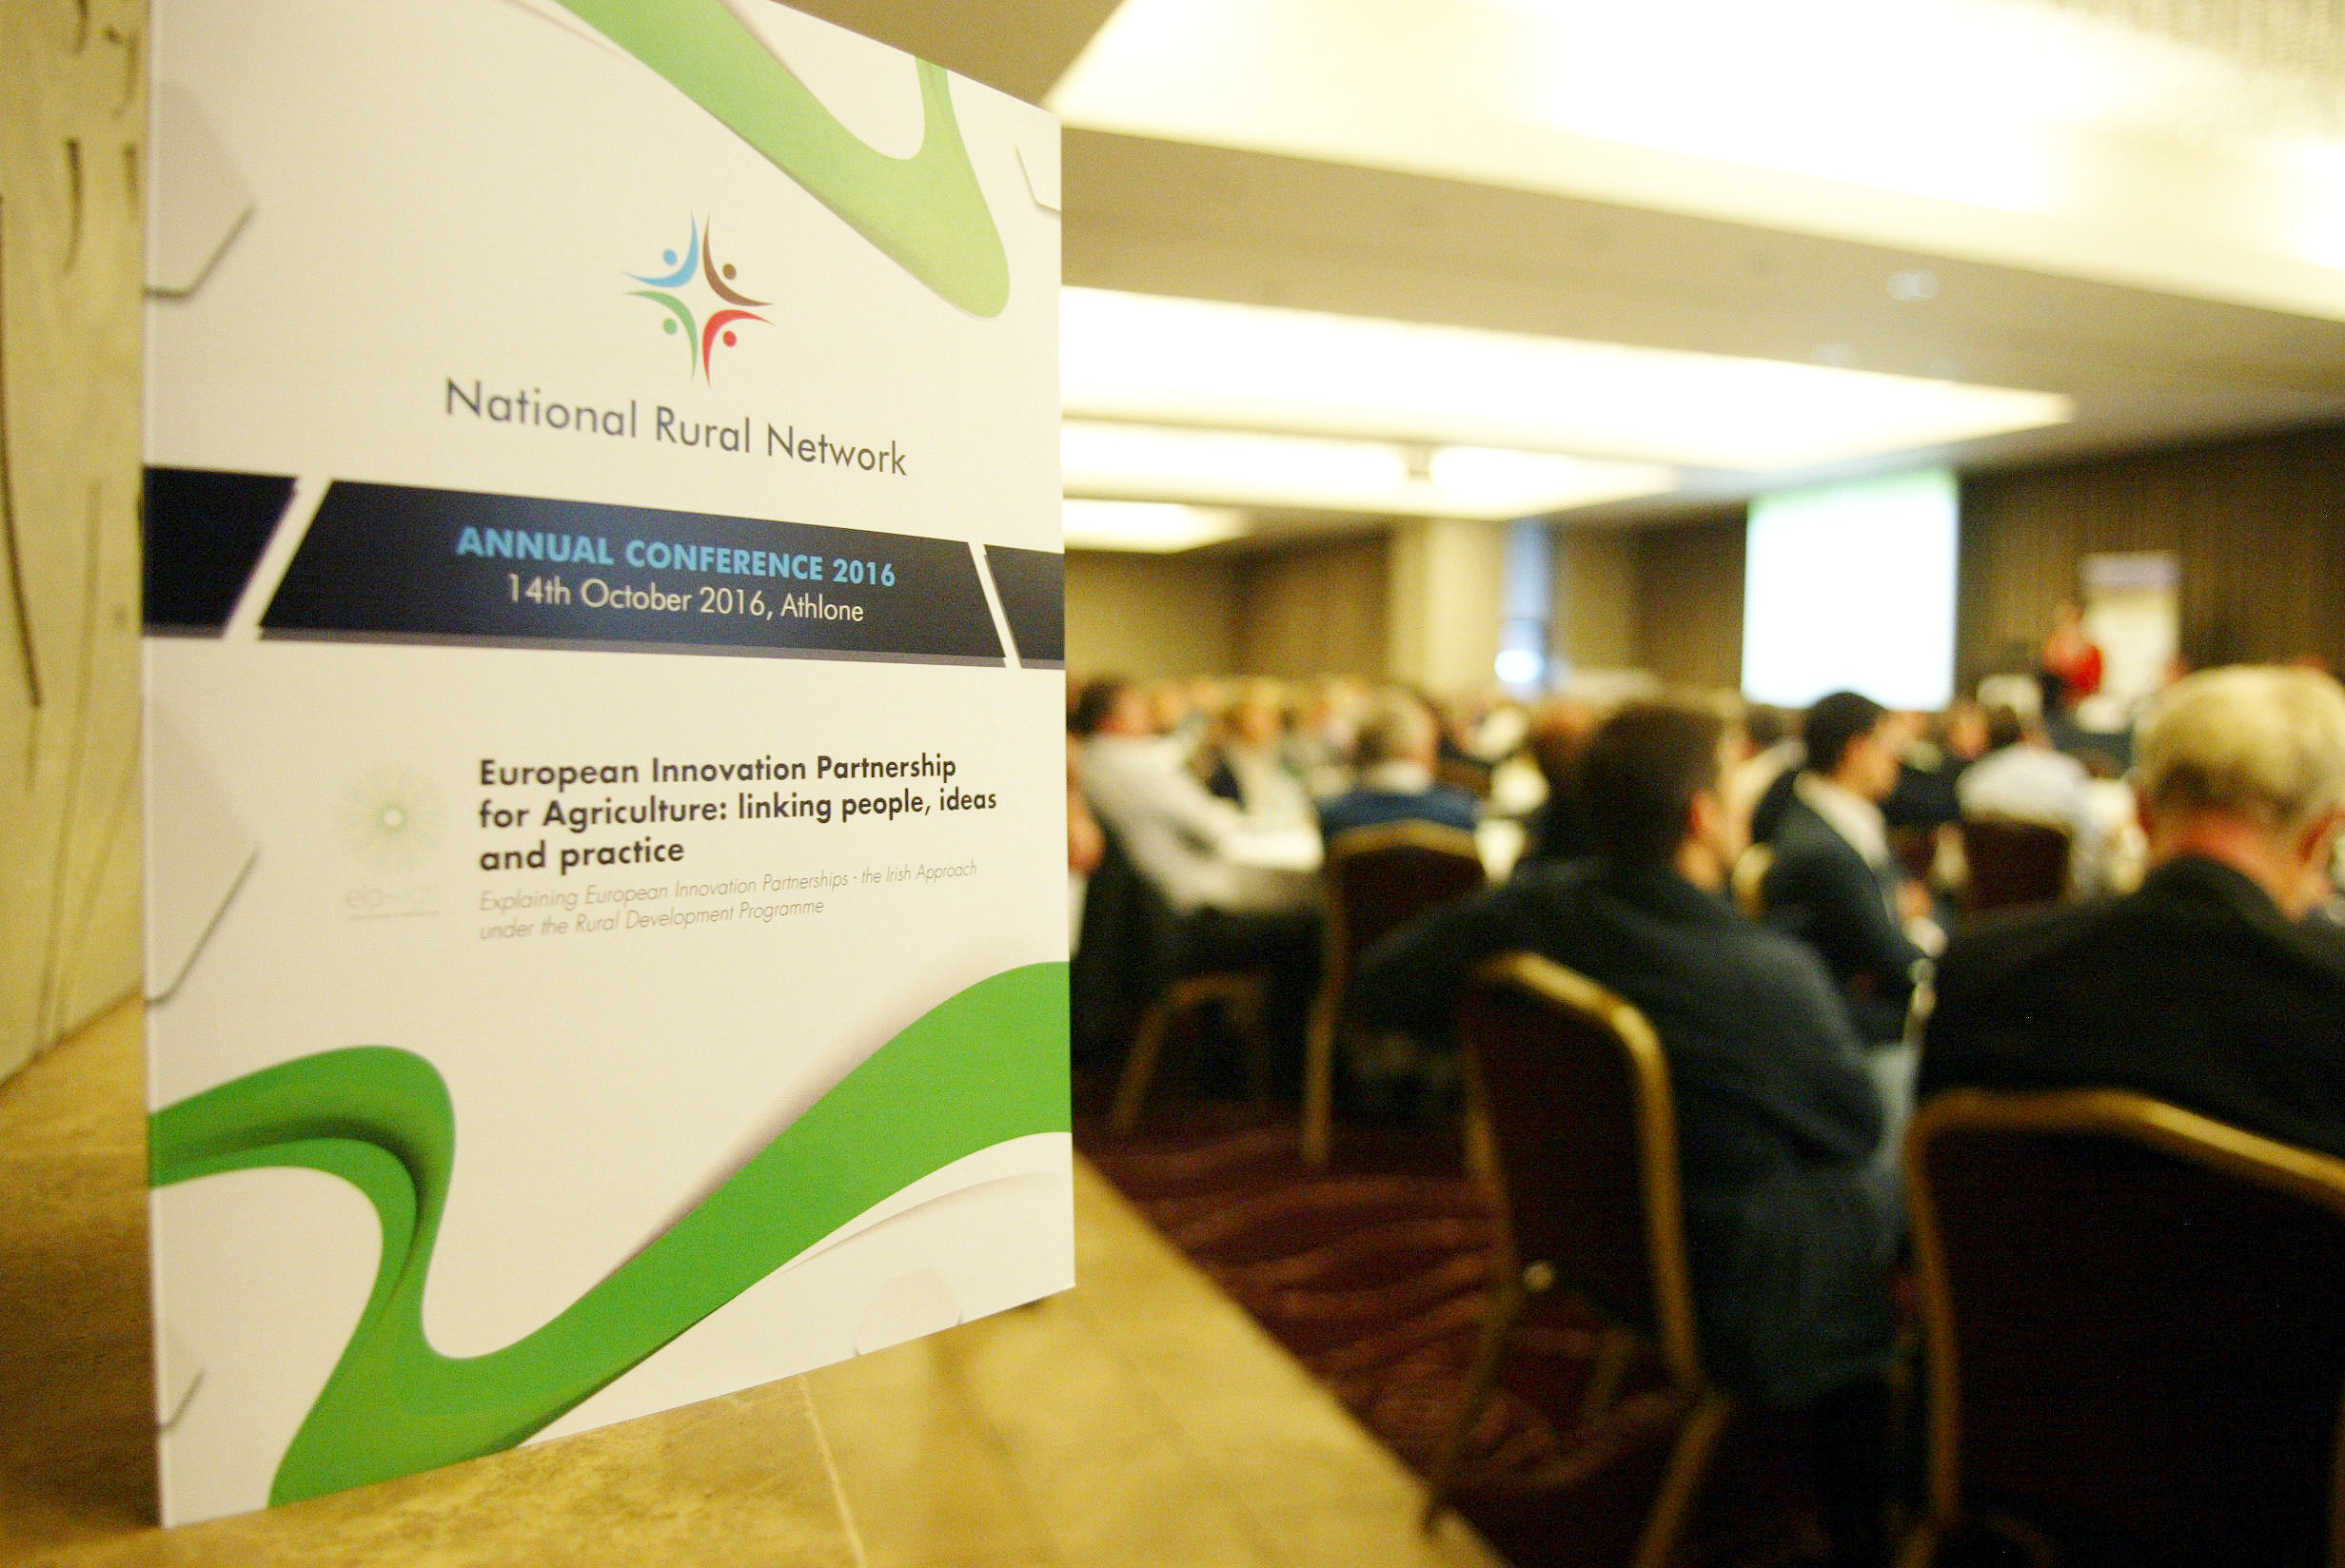 NRN Annual Conference